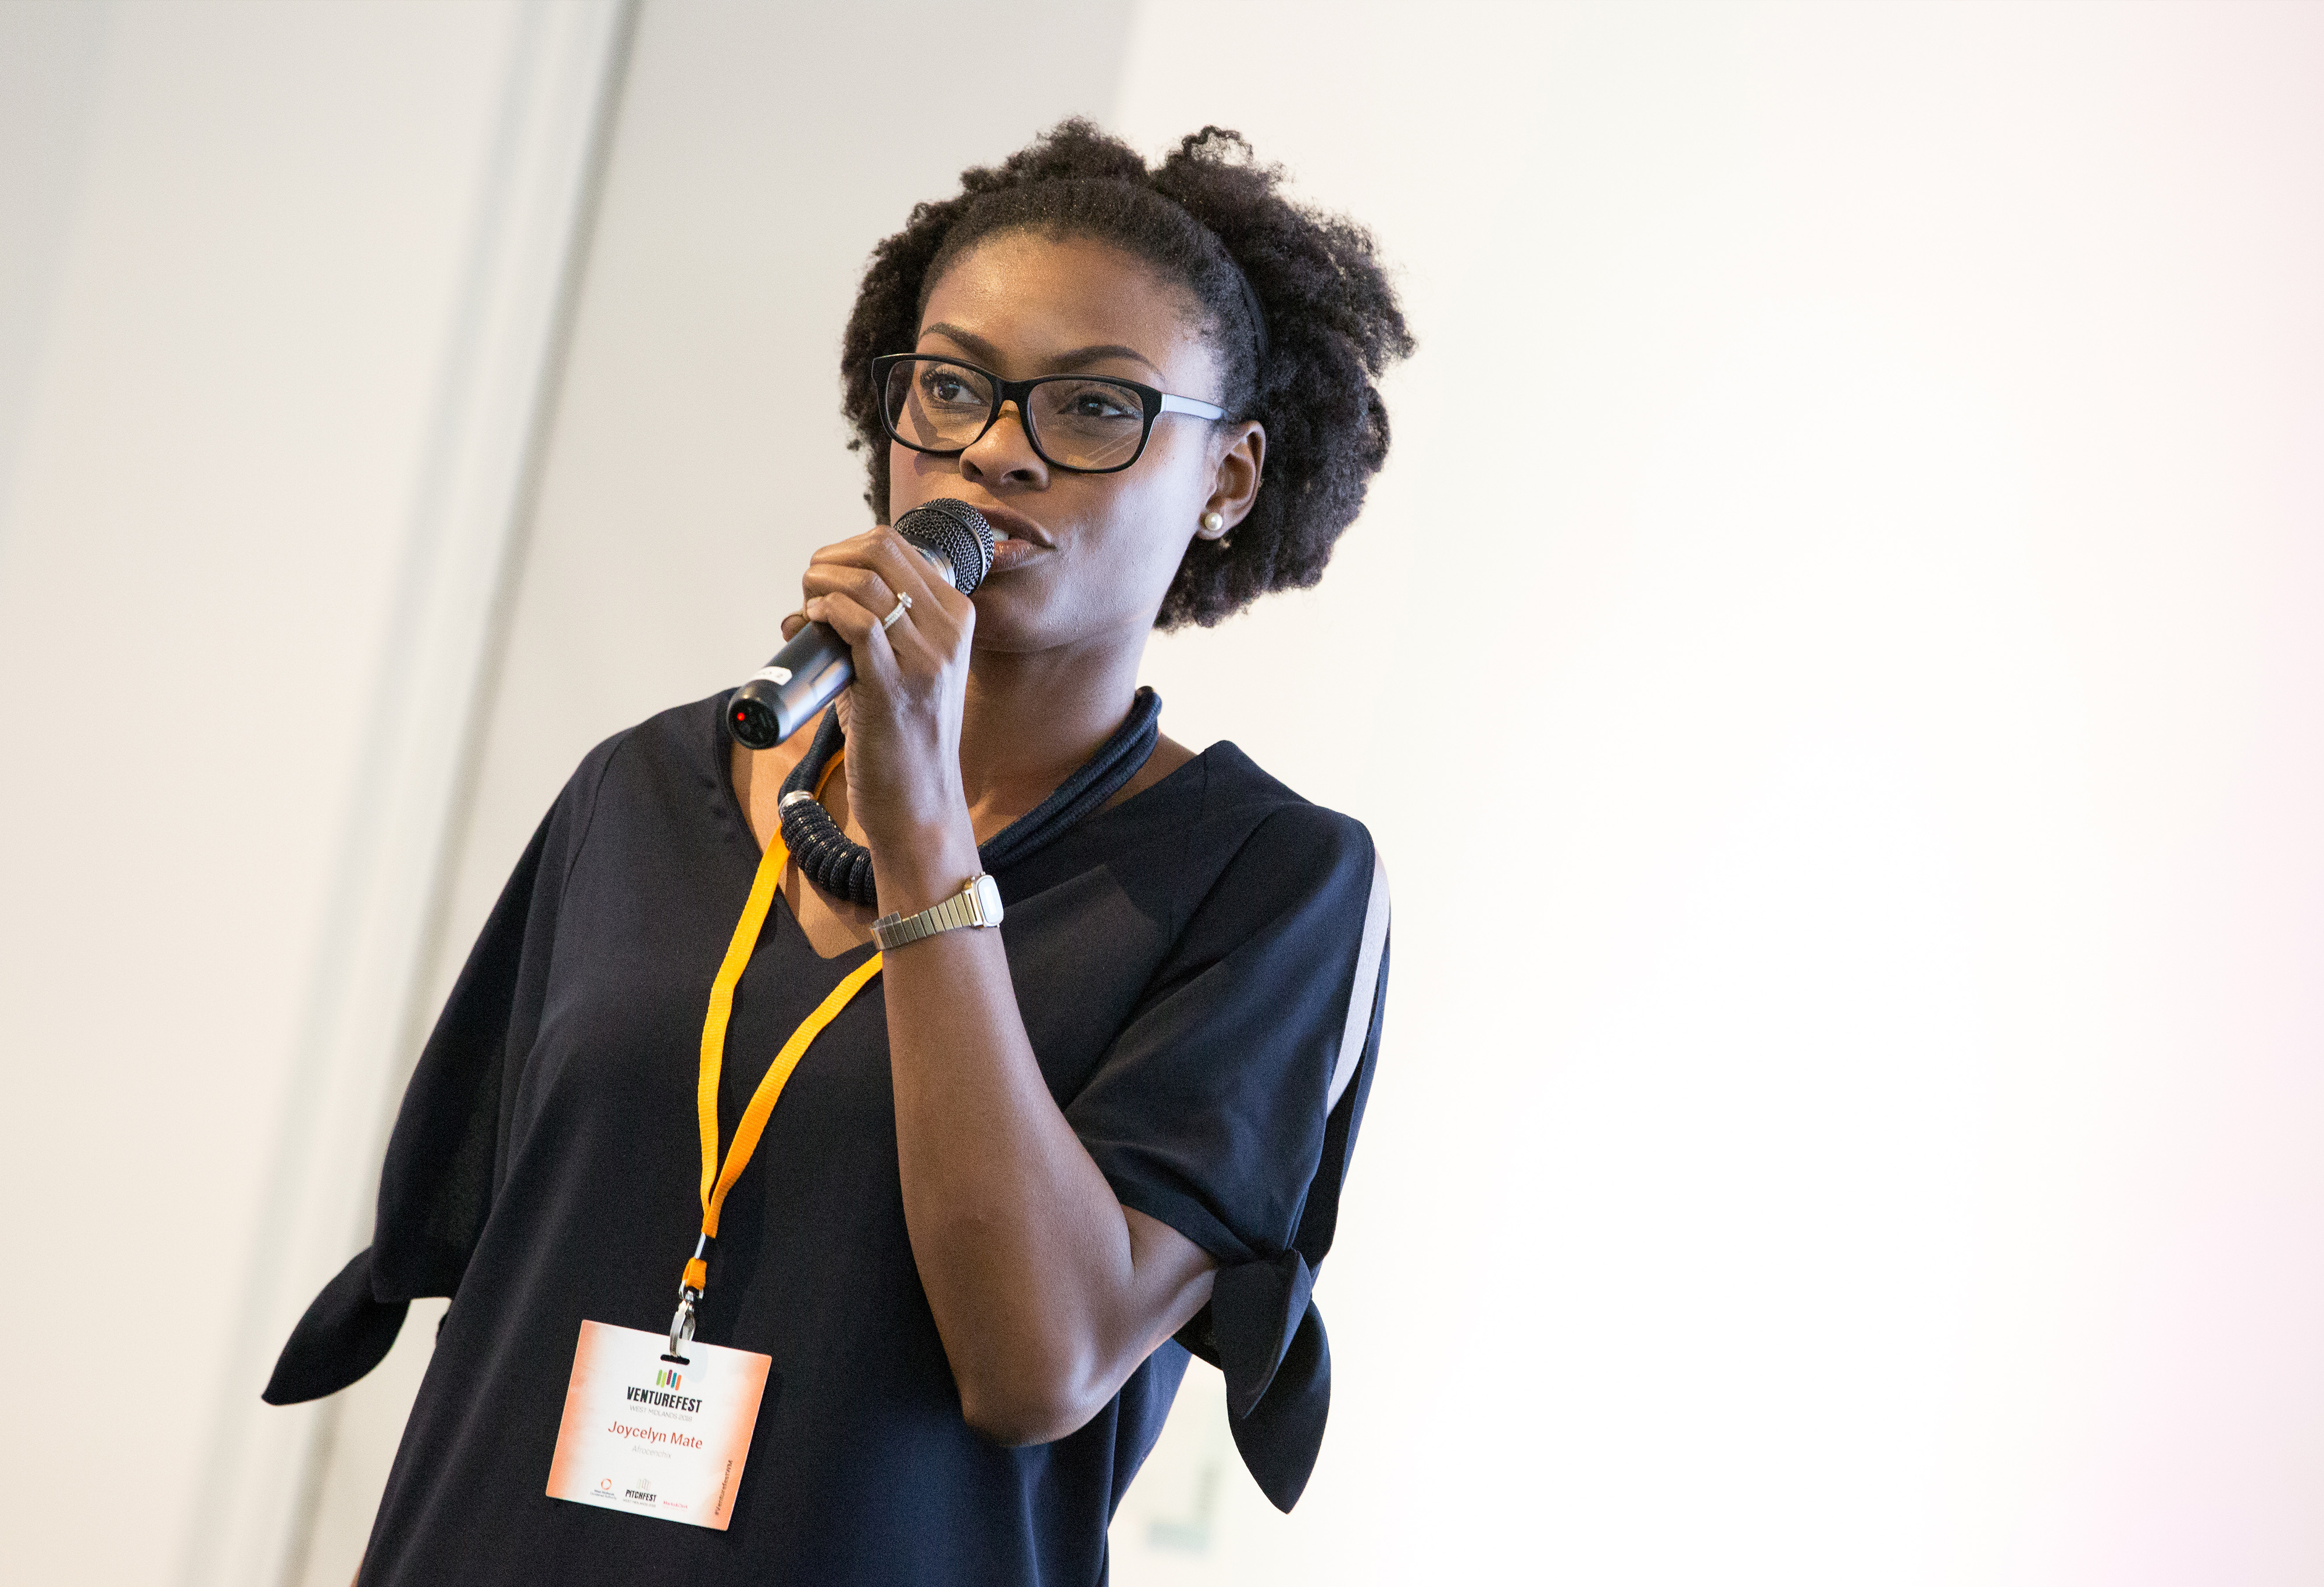 Innovation Birmingham attracts over 300 entrepreneurs and investors